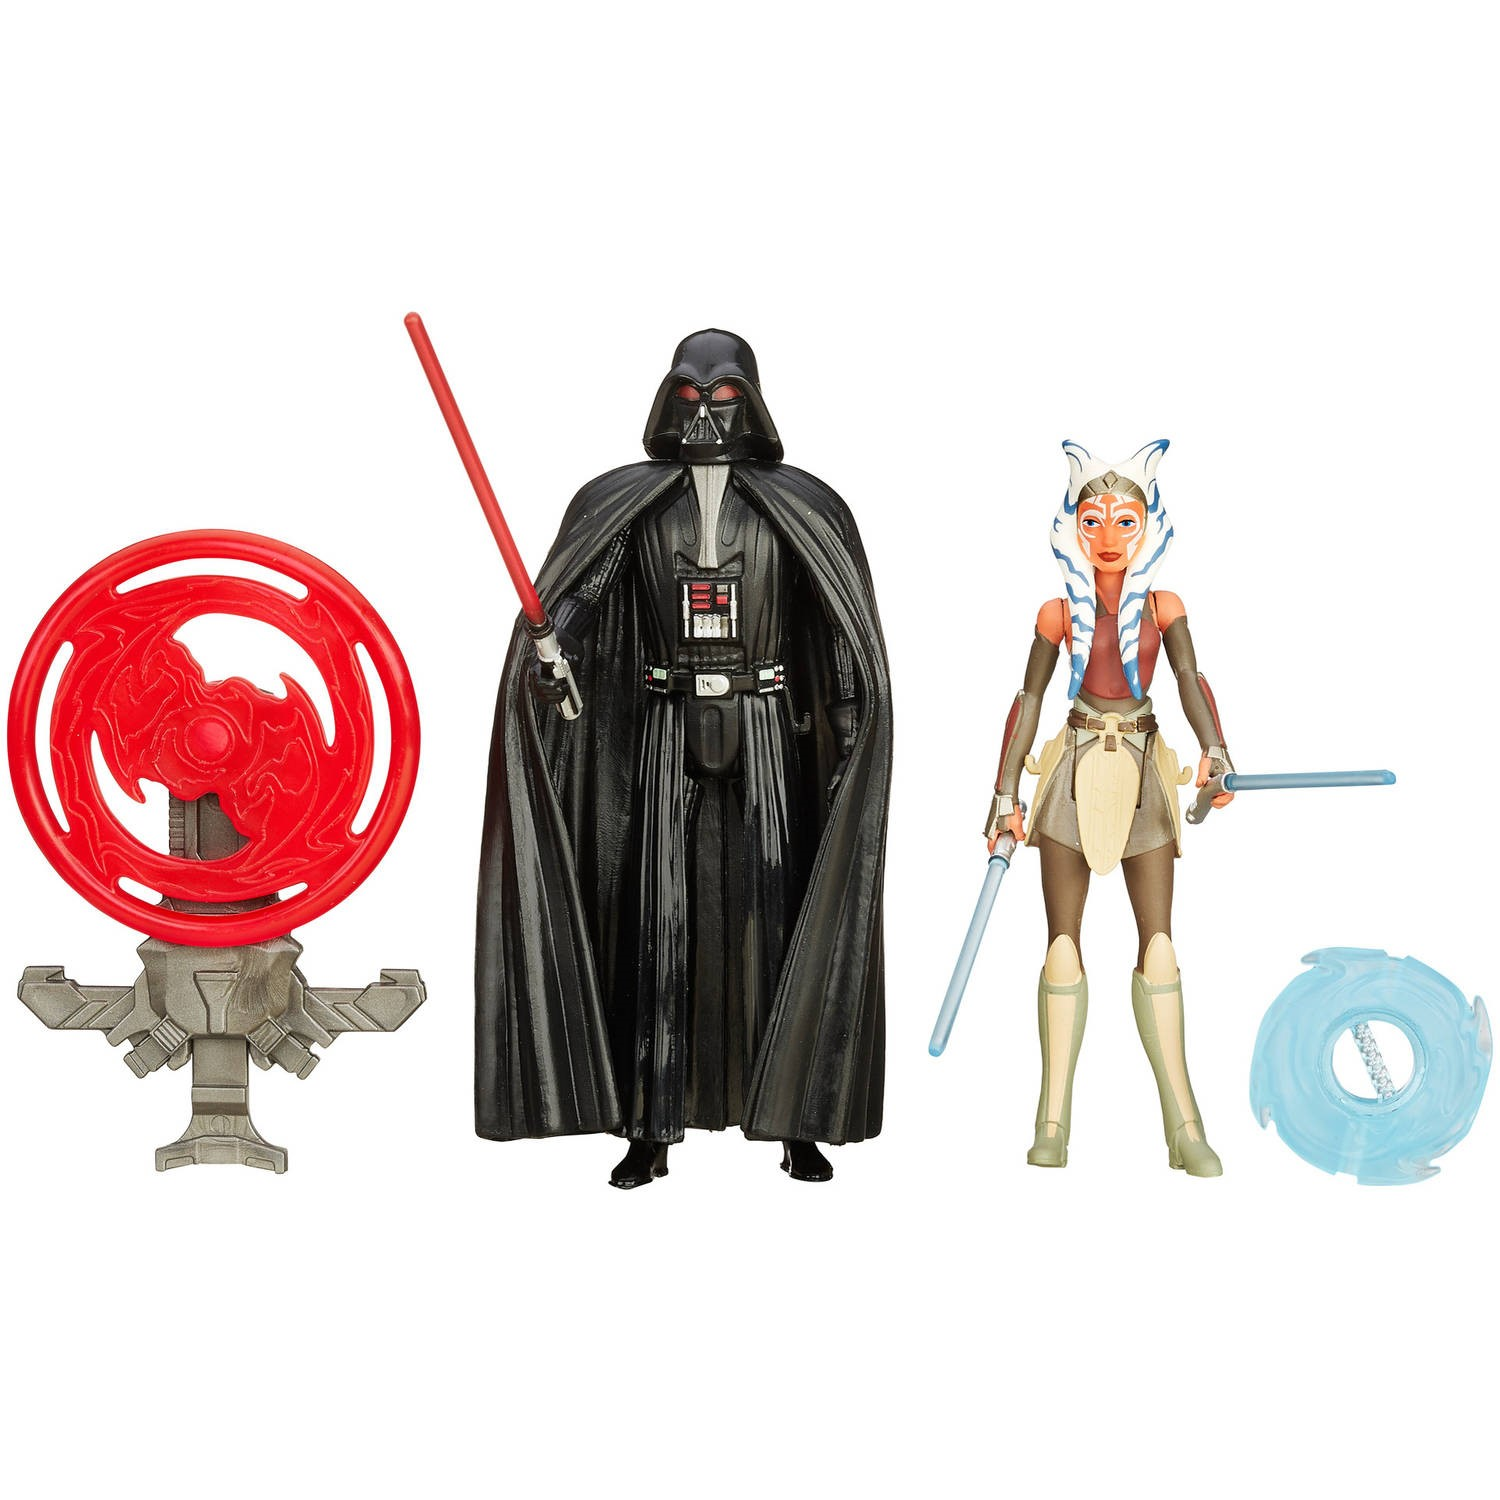 "Star Wars Rebels 3.75"" Figure 2-Pack Space Mission Darth Vader and Ahsoka Tano"